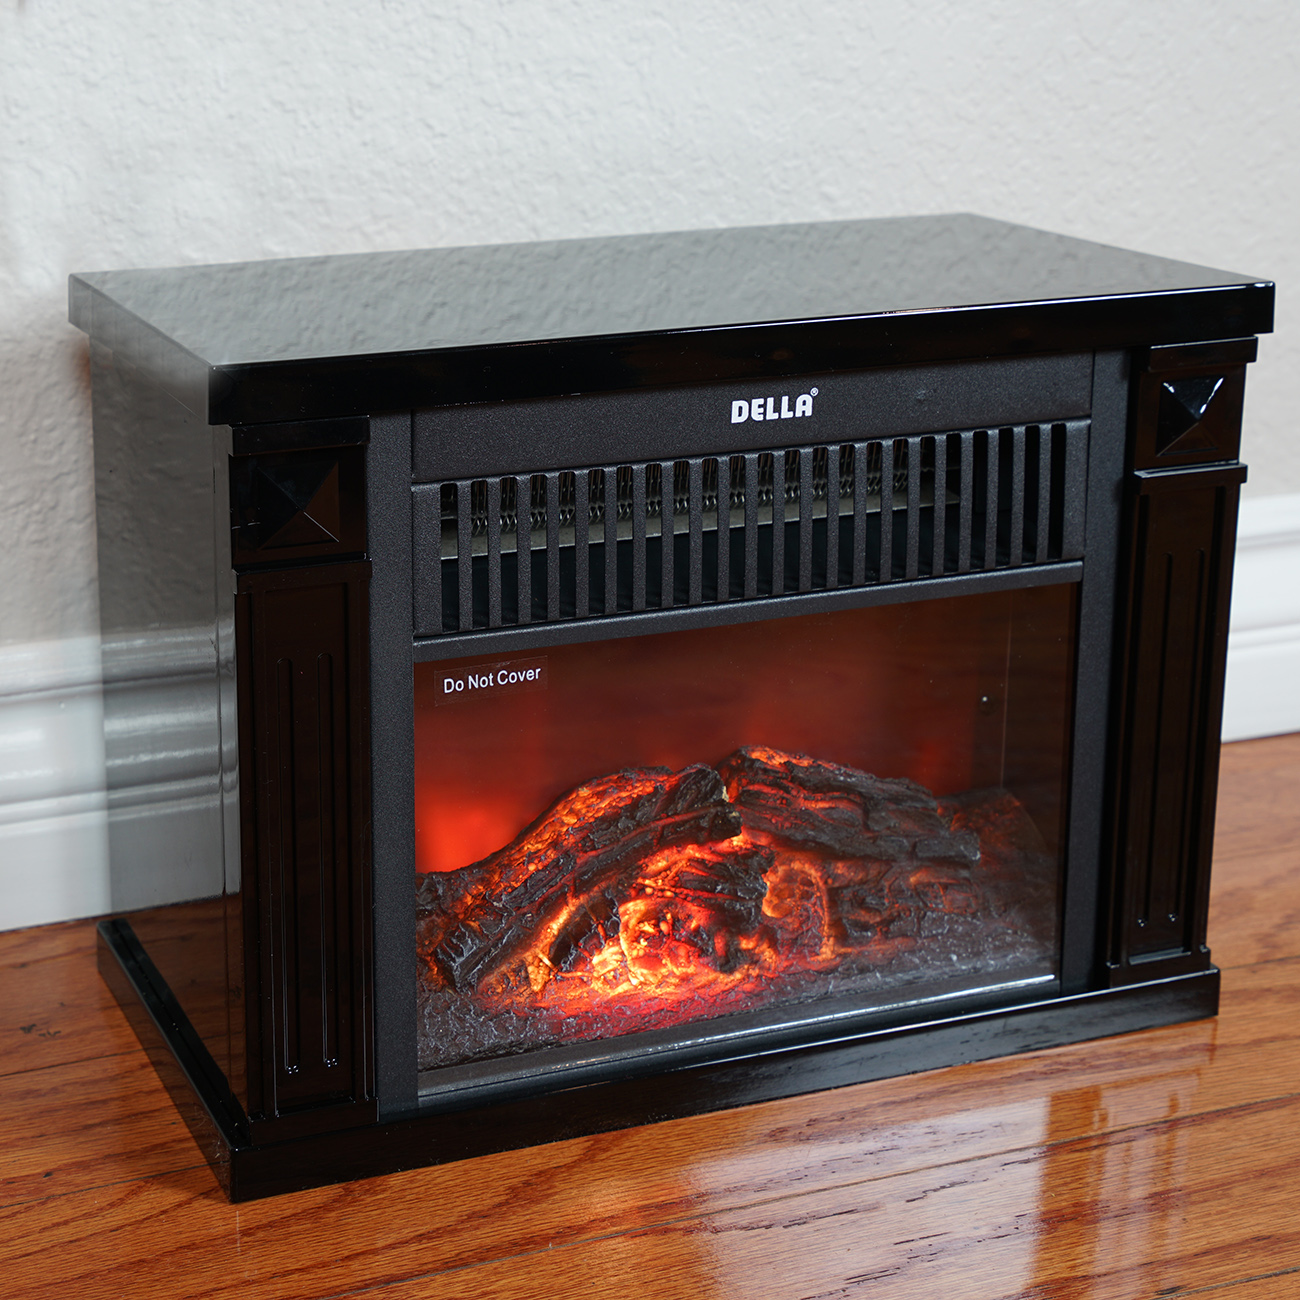 The Infrared Tabletop Space Heater with Flame Effect allows you to keep your personal area toasty